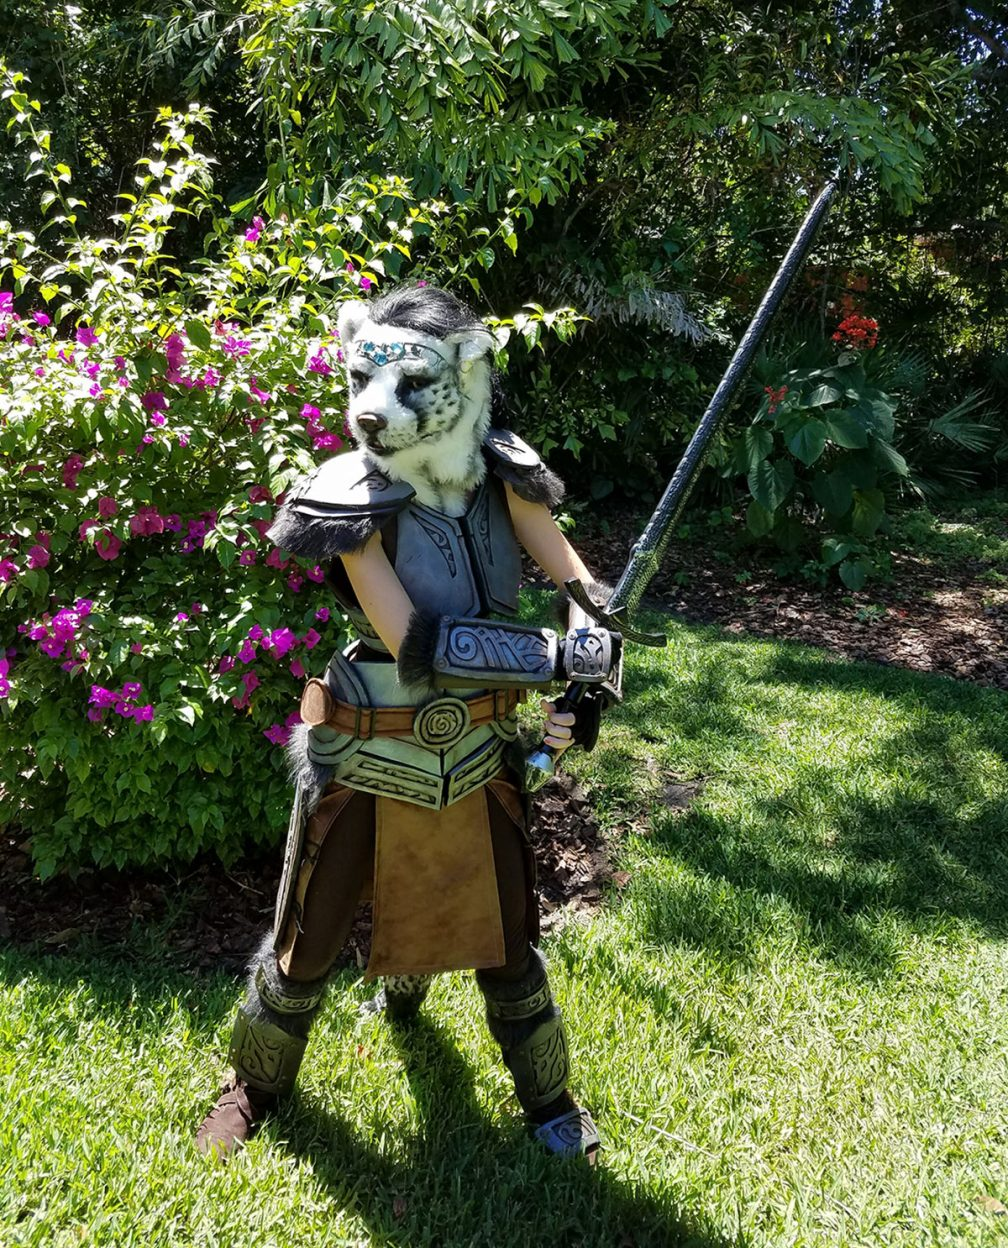 Khajiit from Skyrim cosplay. Our first cosplay attempt. Our yard, pretty bougainvilleas in bloom!